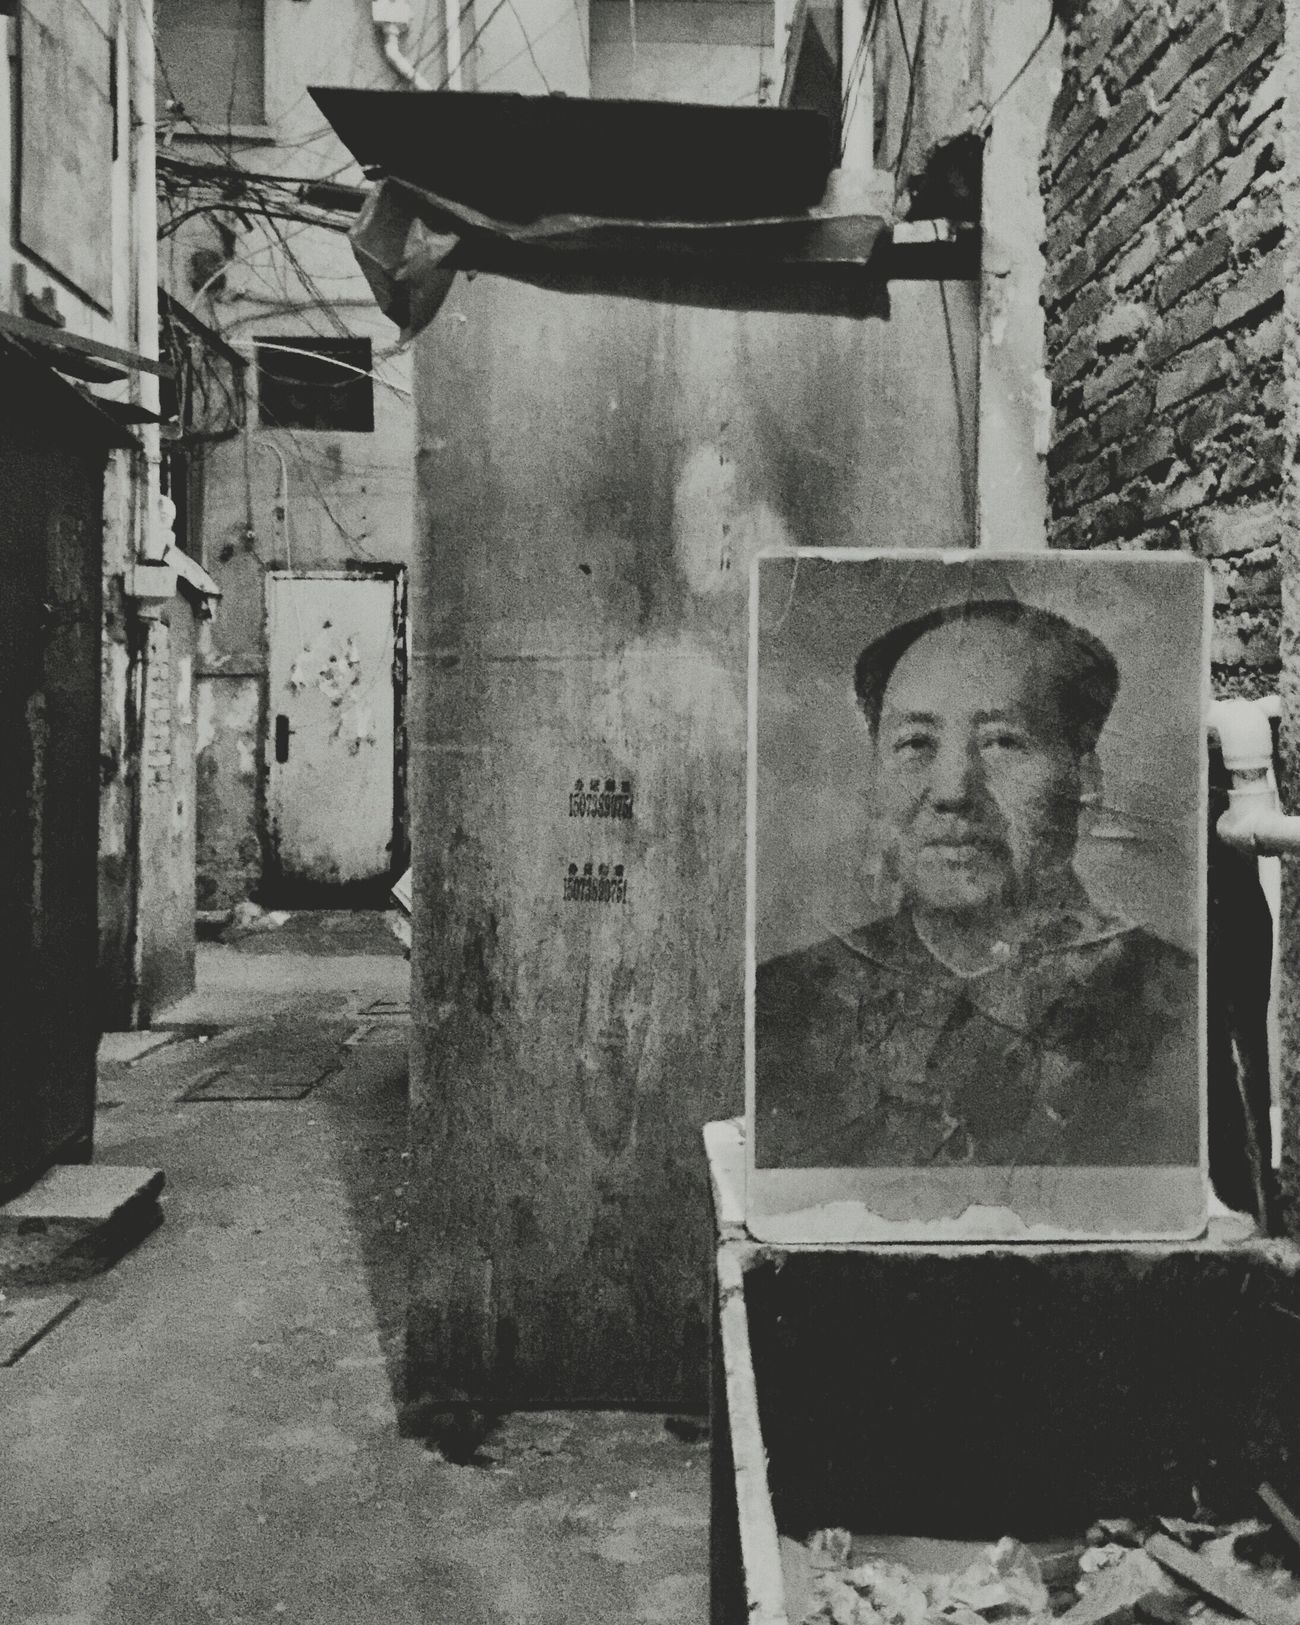 Demolition Stories Demolition Zone Urban Geometry Beauty Of Decay Hutong Destruction Black And White Photography Black And White Blackandwhite Urban Decay Shanghai Mao Tse Tung